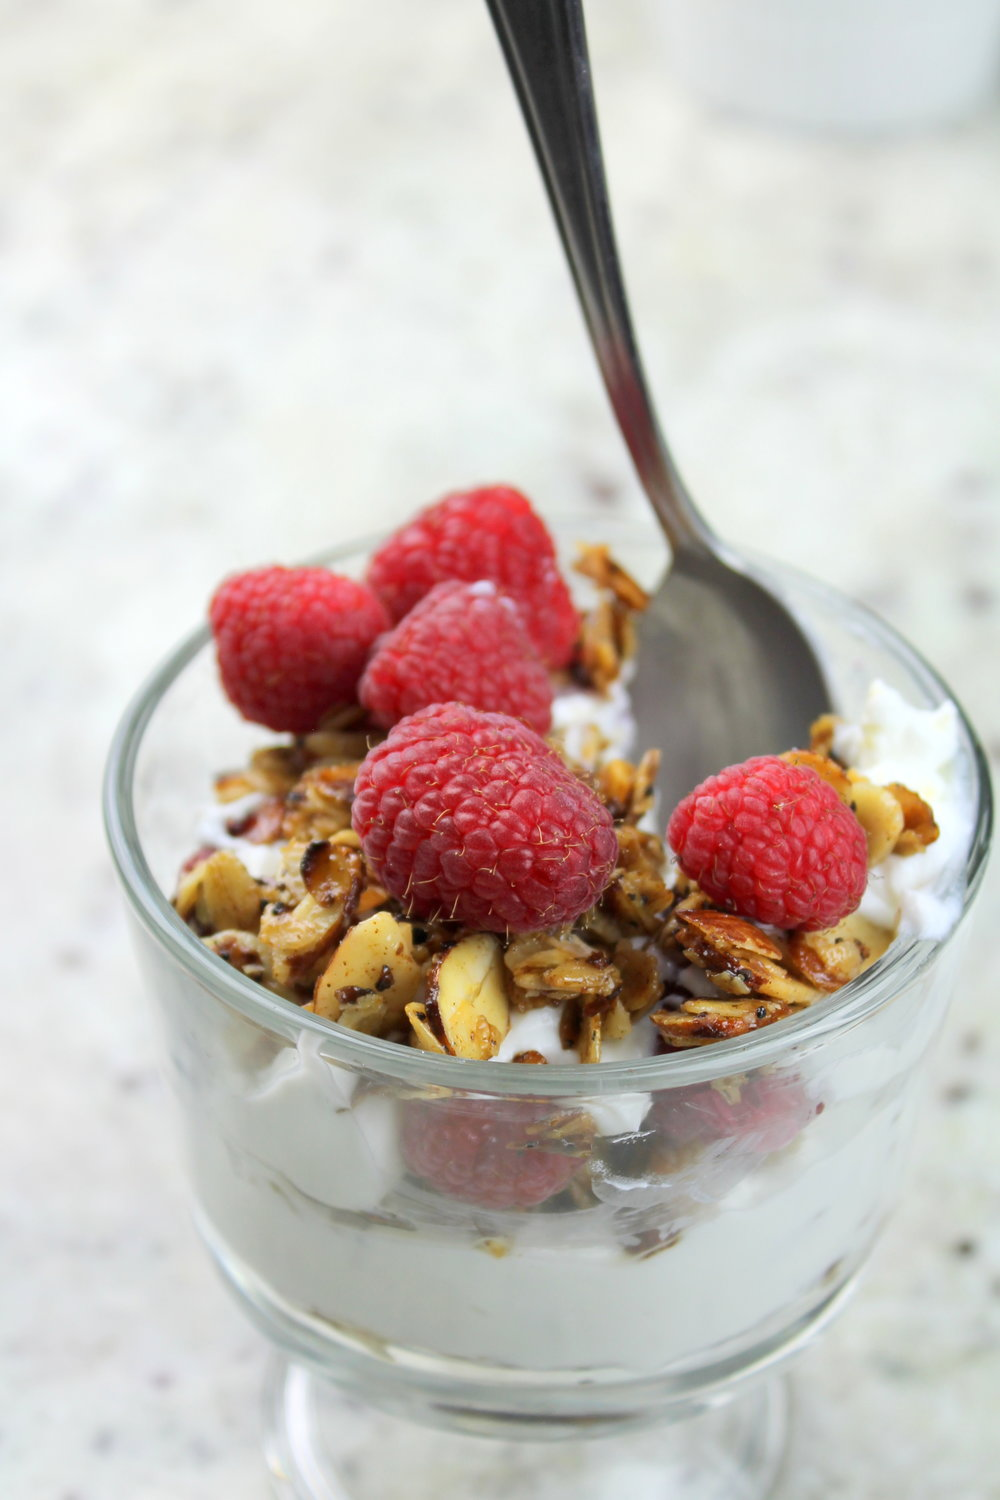 Step up your breakfast game with yogurt parfait : quick, nutritious, and easy to assemble!